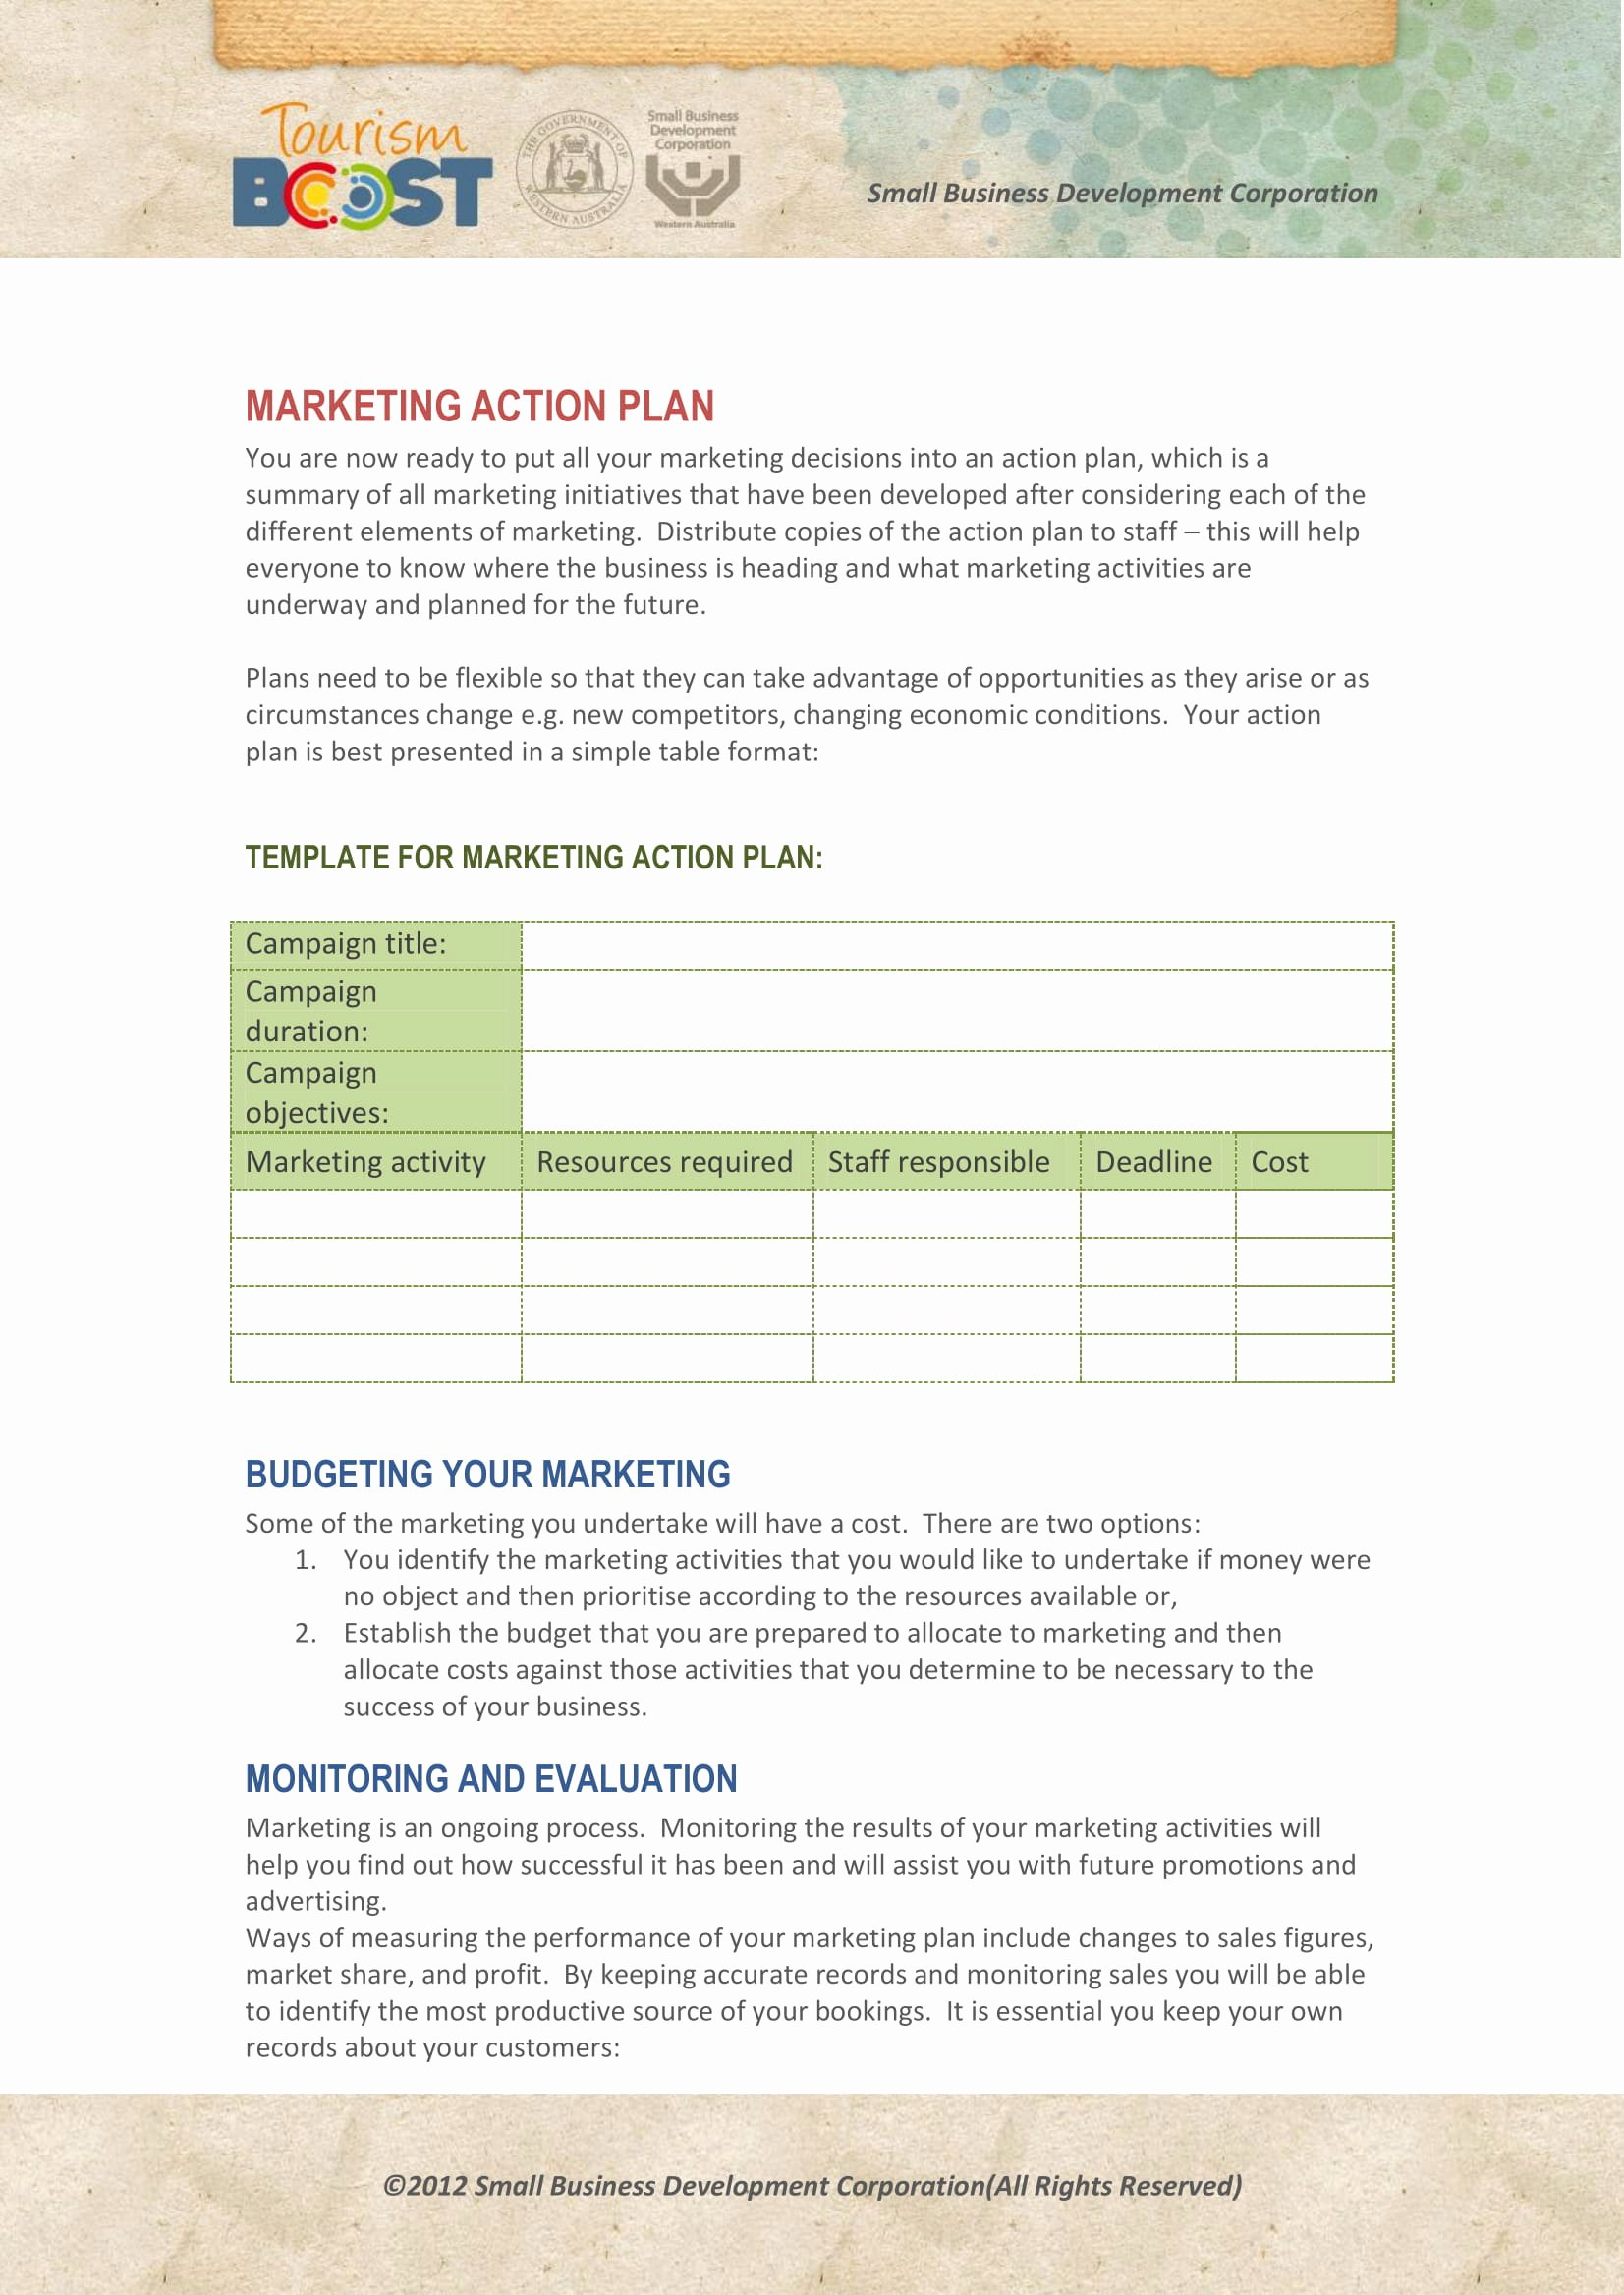 Marketing Action Plan Templates Elegant 10 Marketing Action Plan Examples & Templates